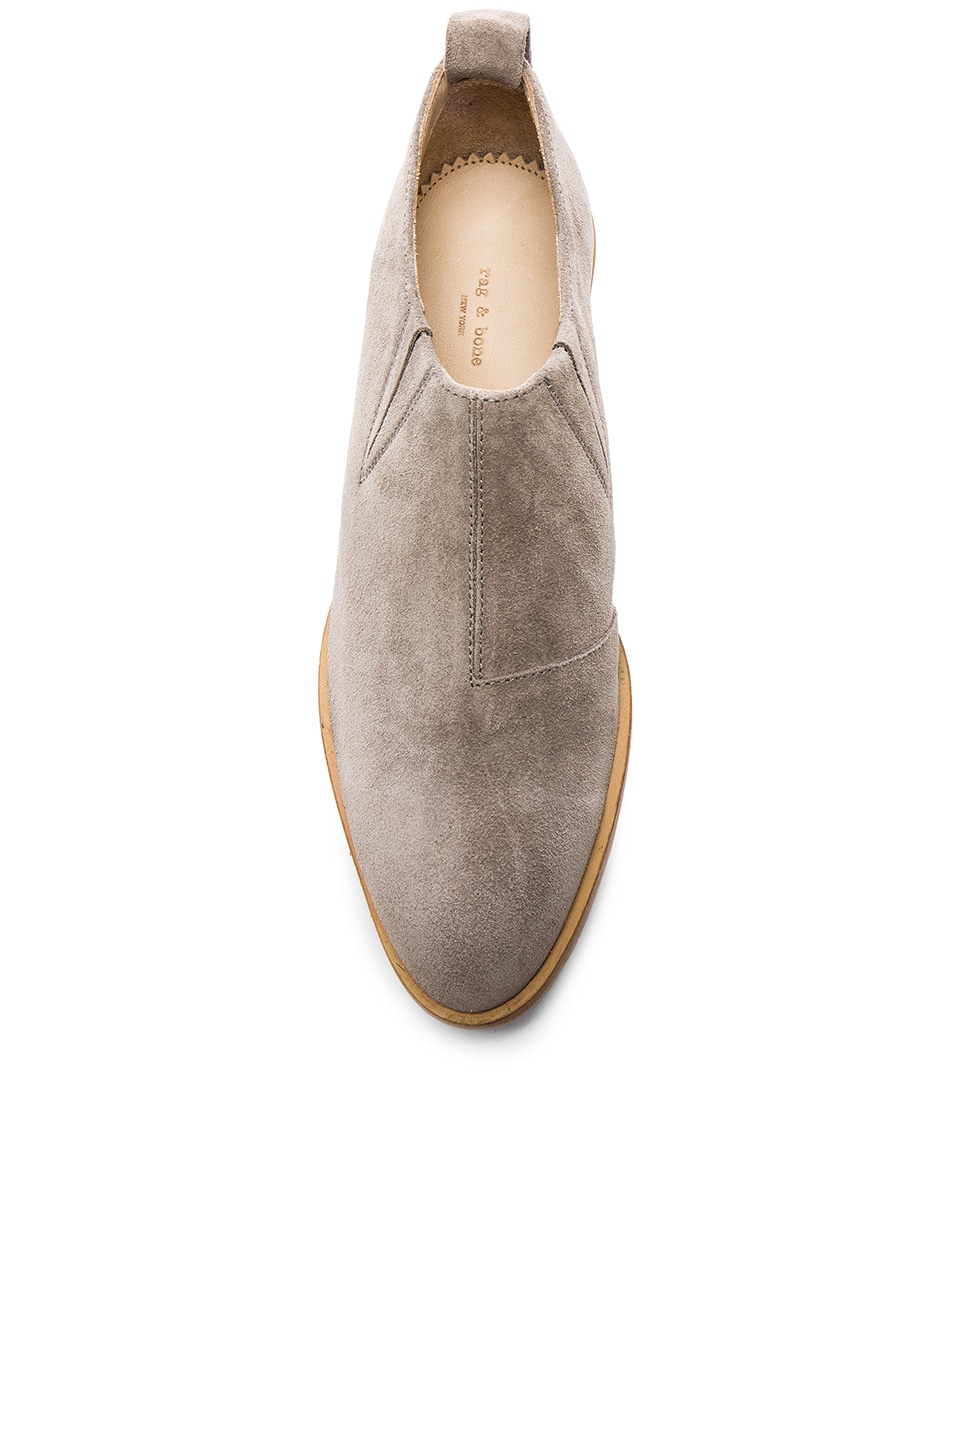 Image 4 of Rag & Bone Suede Thompson Boots in Warm Grey Suede